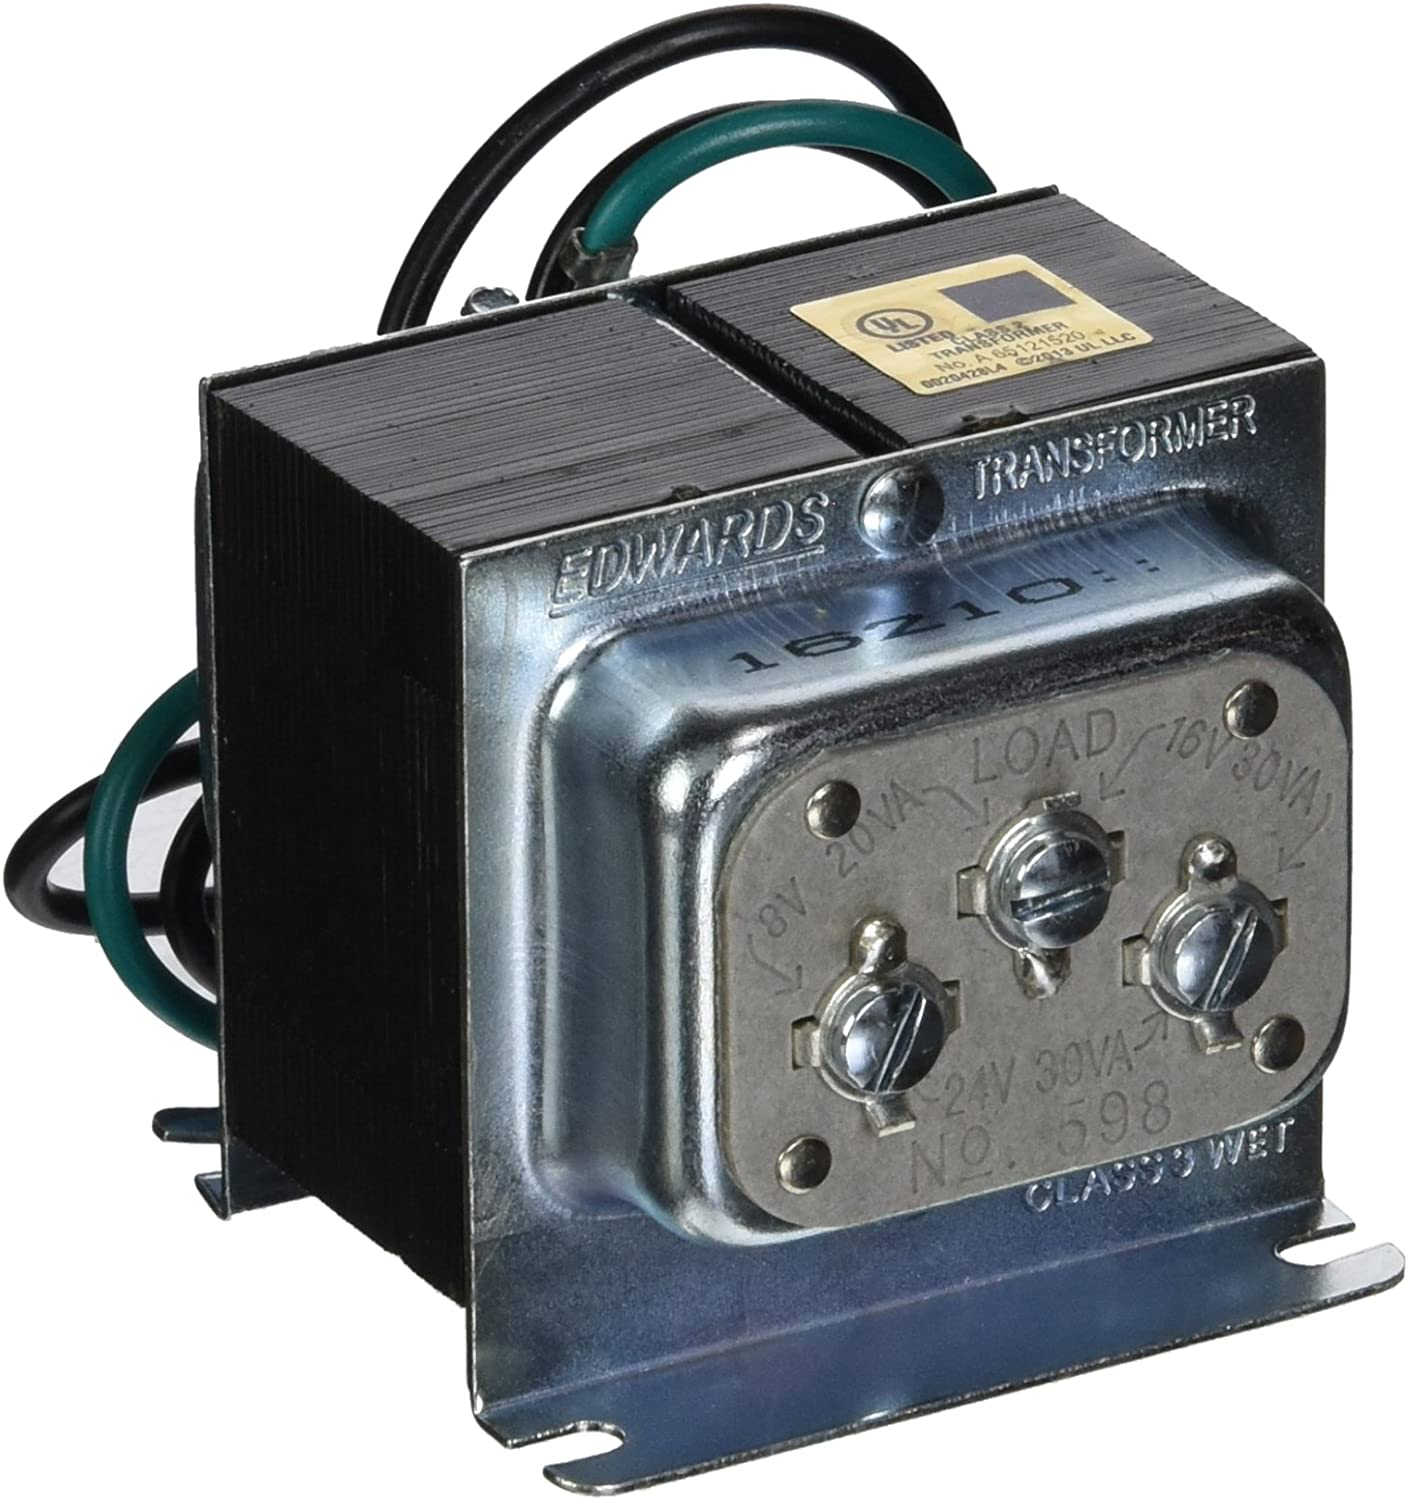 edwards signaling 598 120v 8/16/24v 30w transformer - security and  surveillance accessories - amazon.com  amazon.com